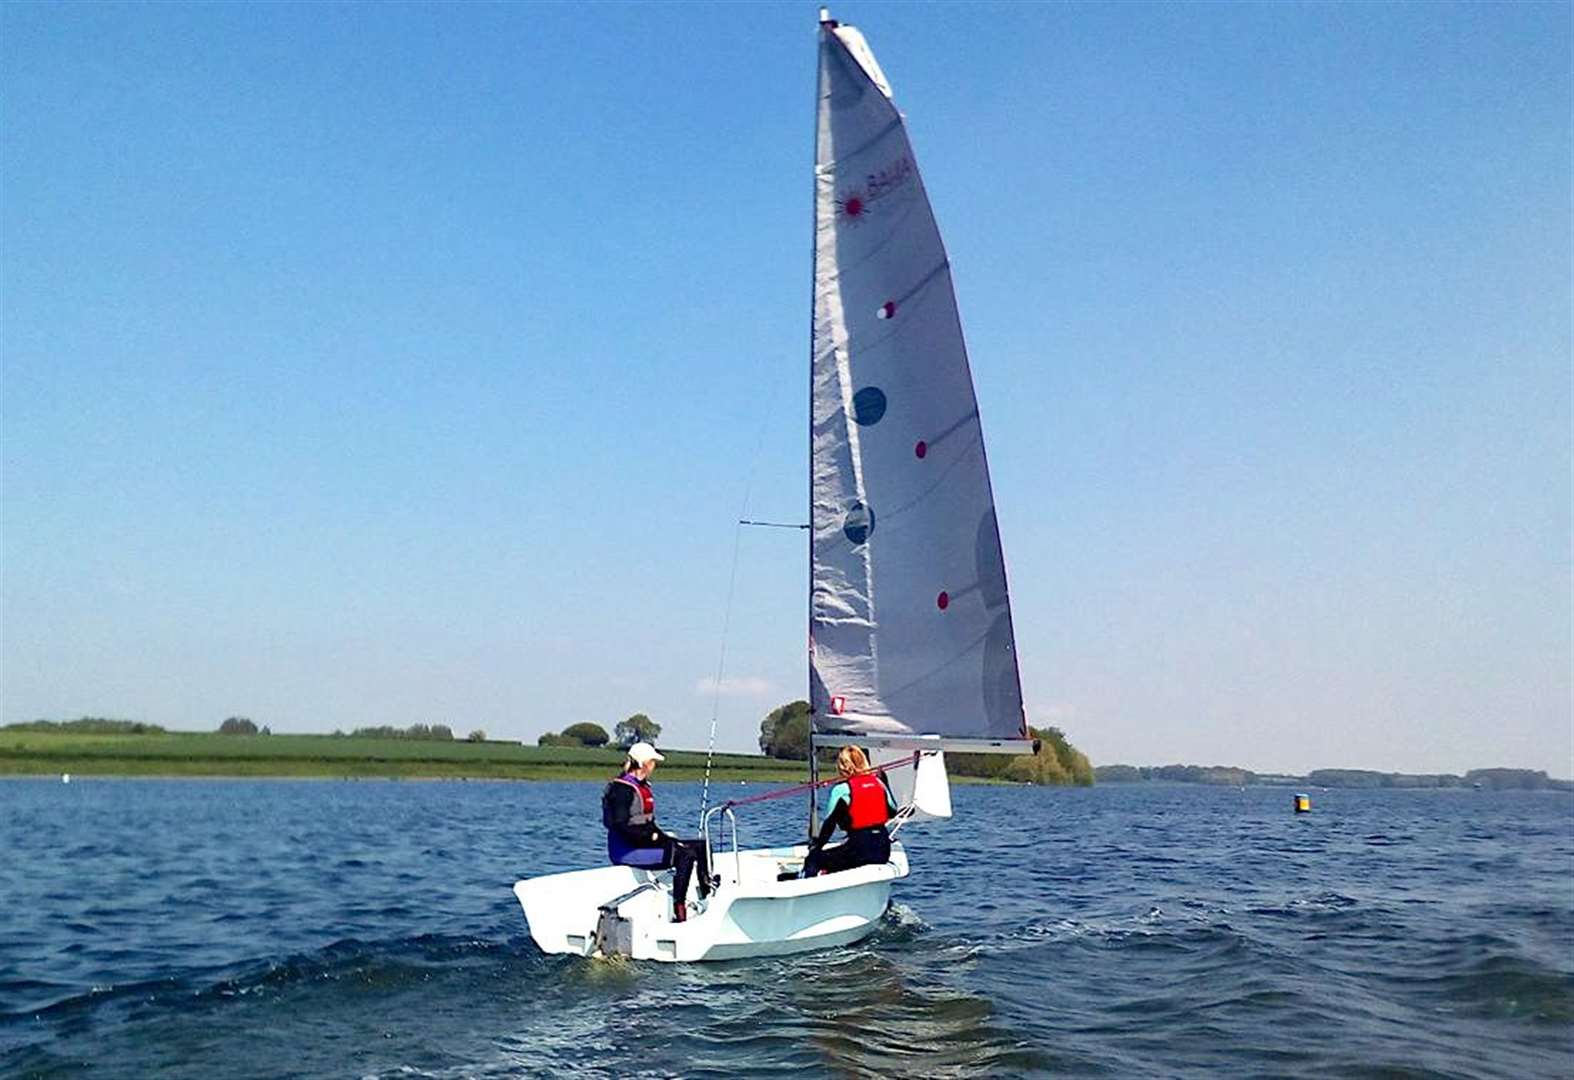 Rutland Sailing Club invites people to Push The Boat Out